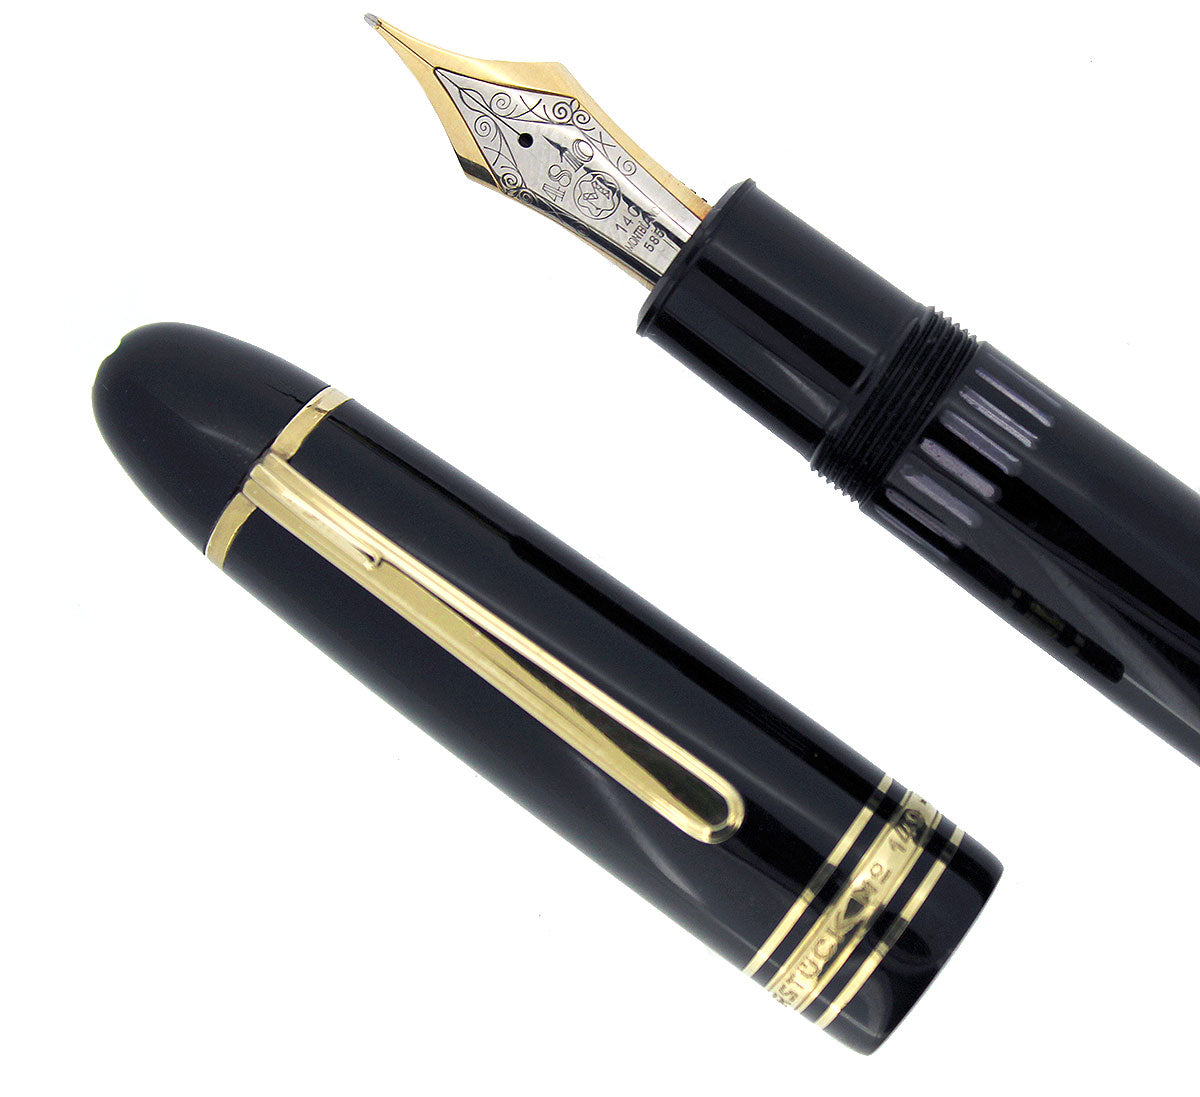 CIRCA 1973-1985 MONTBLANC MEISTERSTUCK N°149 FOUNTAIN PEN 14K NIB GERMANY OFFERED BY ANTIQUE DIGGER